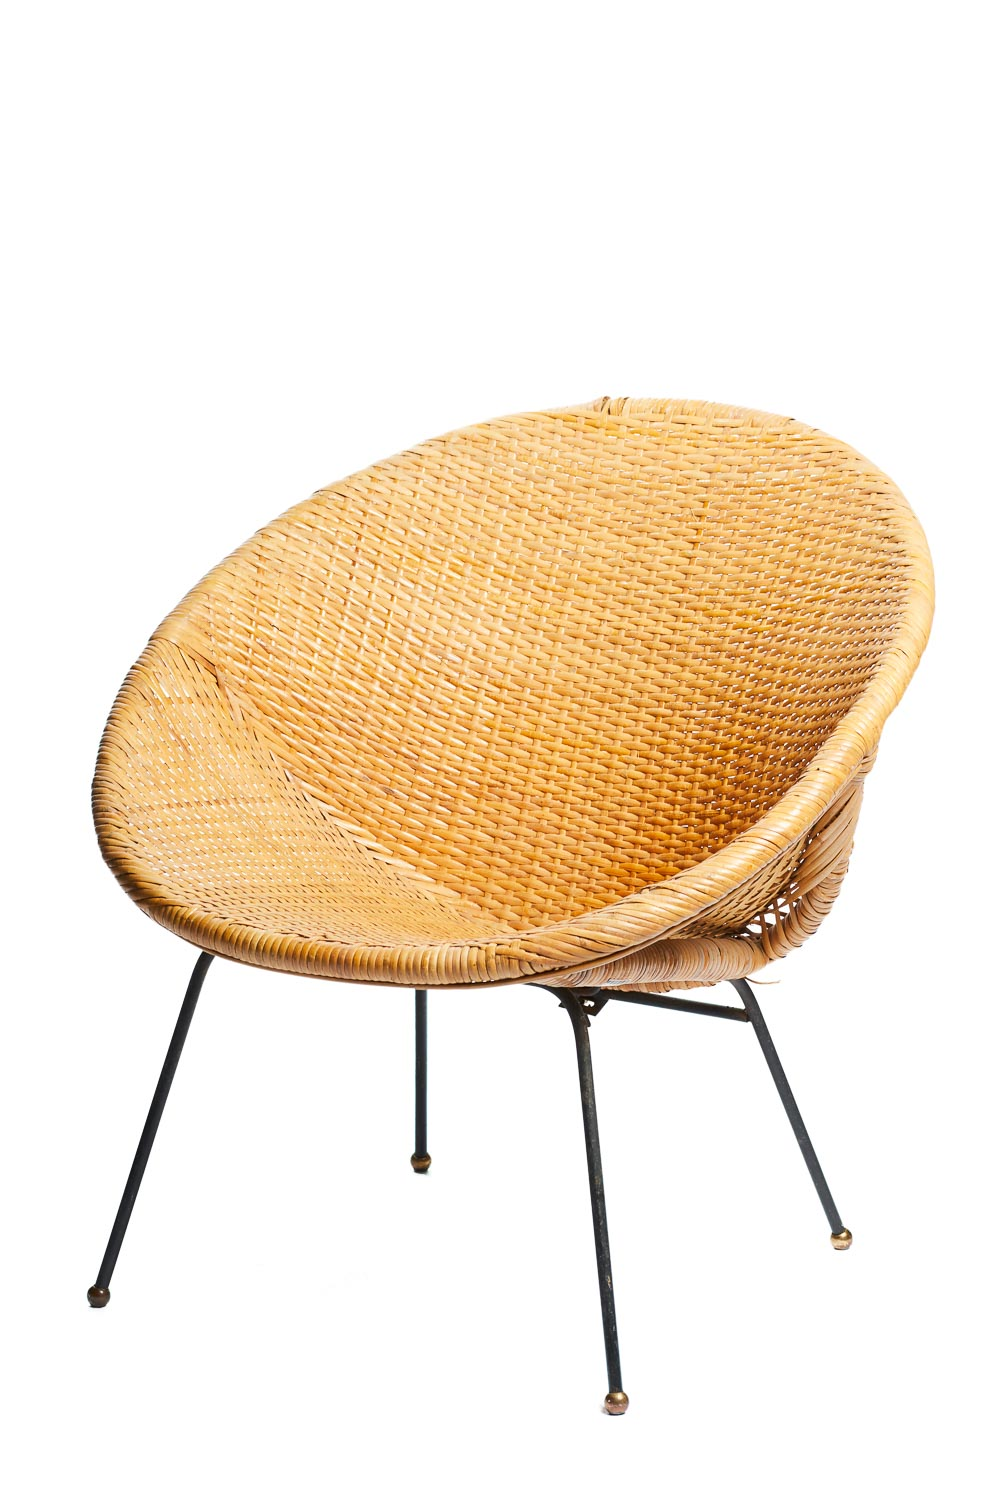 Satellite Chair Chair Wicker Round Mcm Satellite